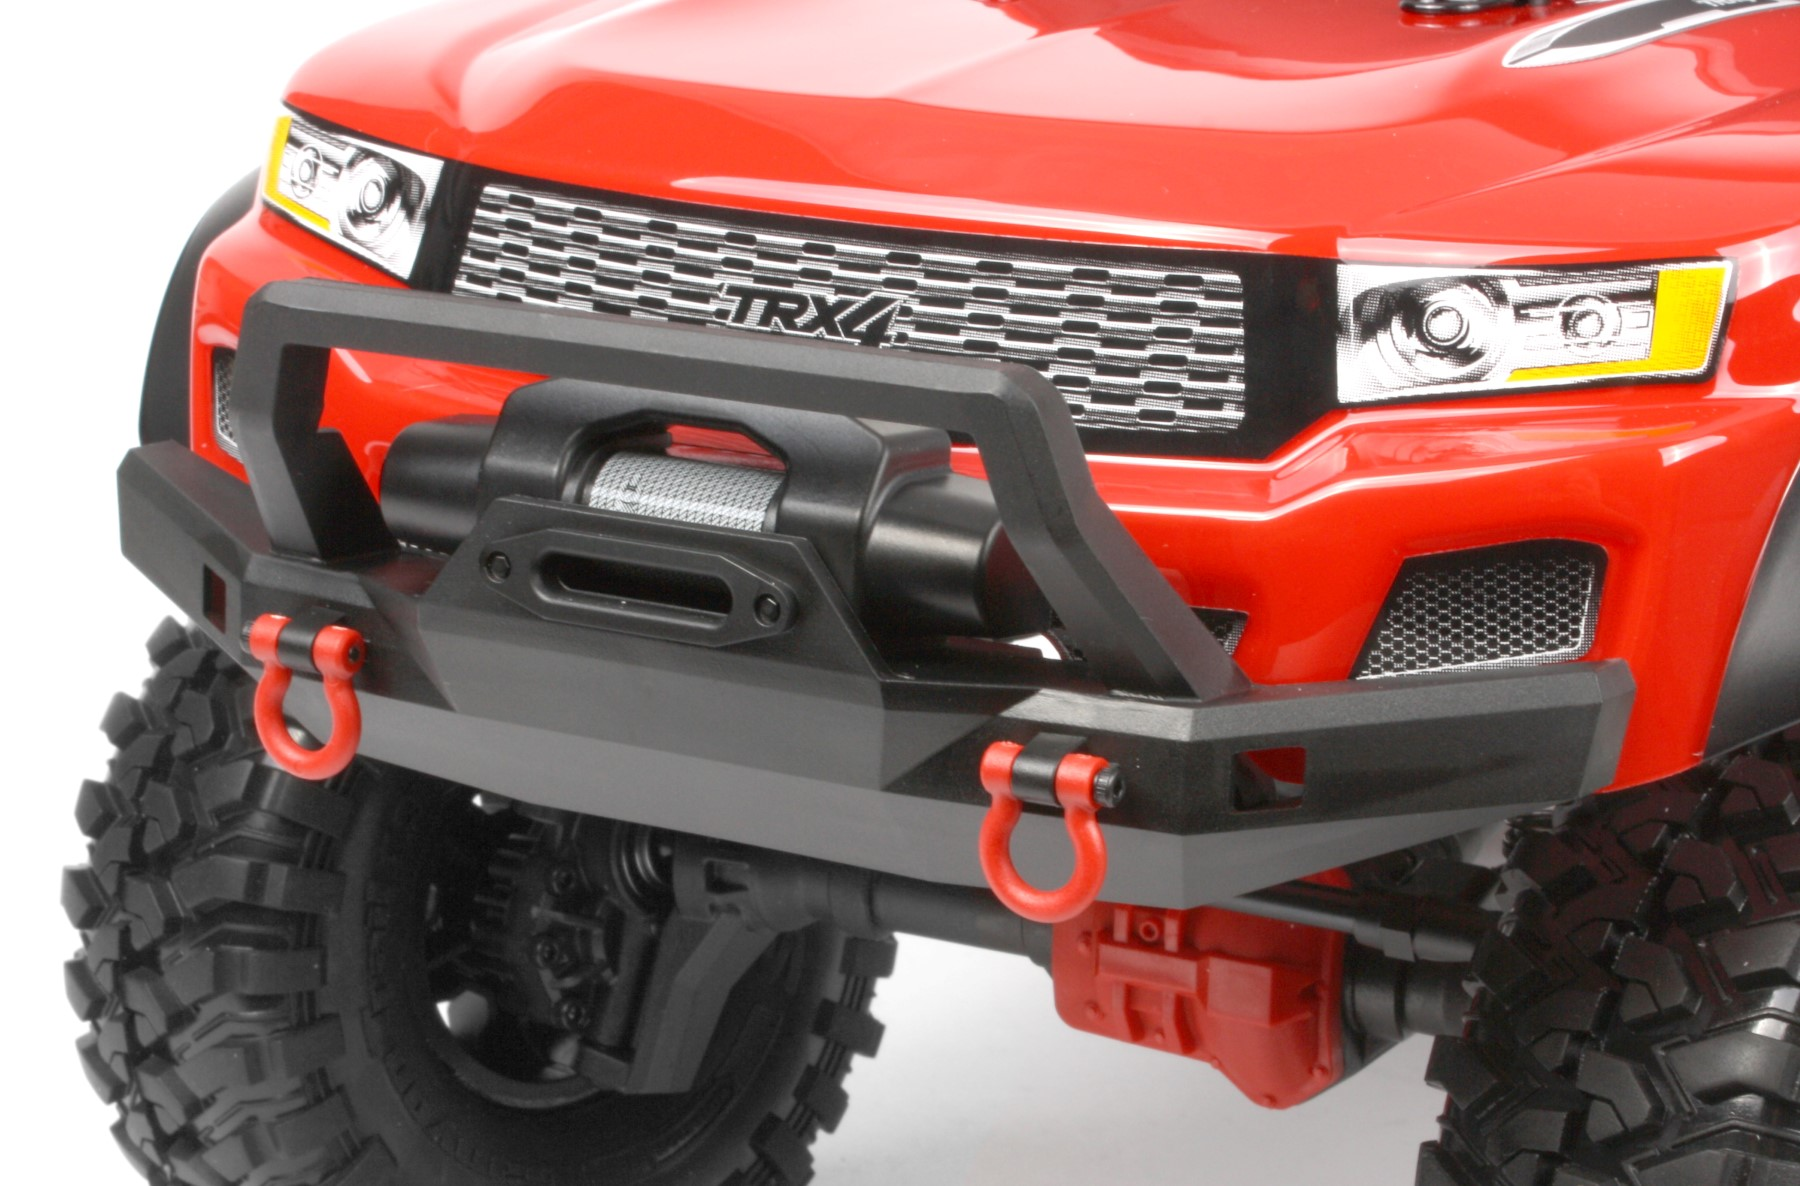 EXCLUSIVE! Traxxas Launches TRX-4 SPORT [VIDEO] - RC Car Action